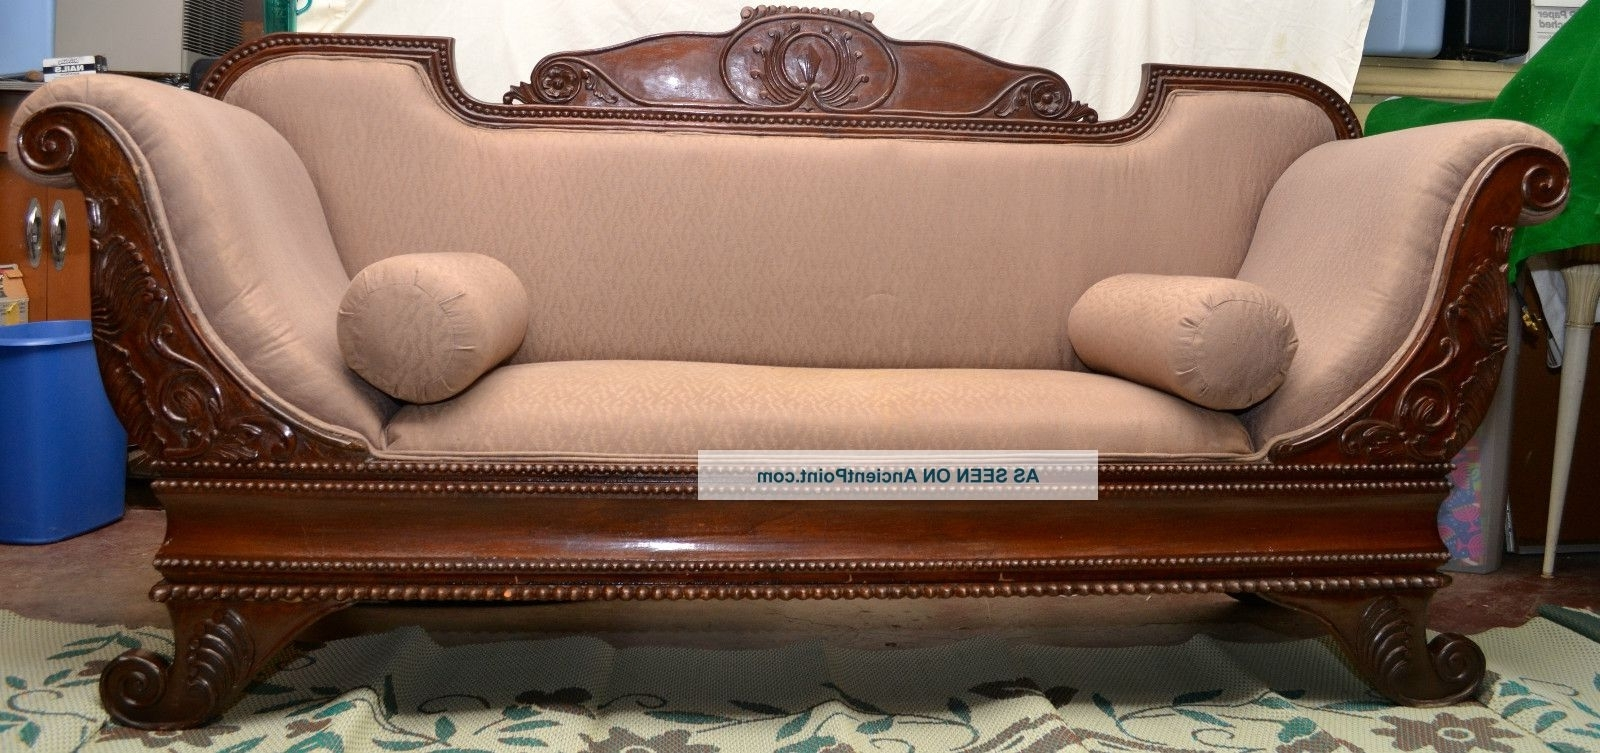 Cleopatra Gothic/old West/victorian Sofa 1800 1899 Photo With Preferred Gothic Sofas (View 2 of 15)